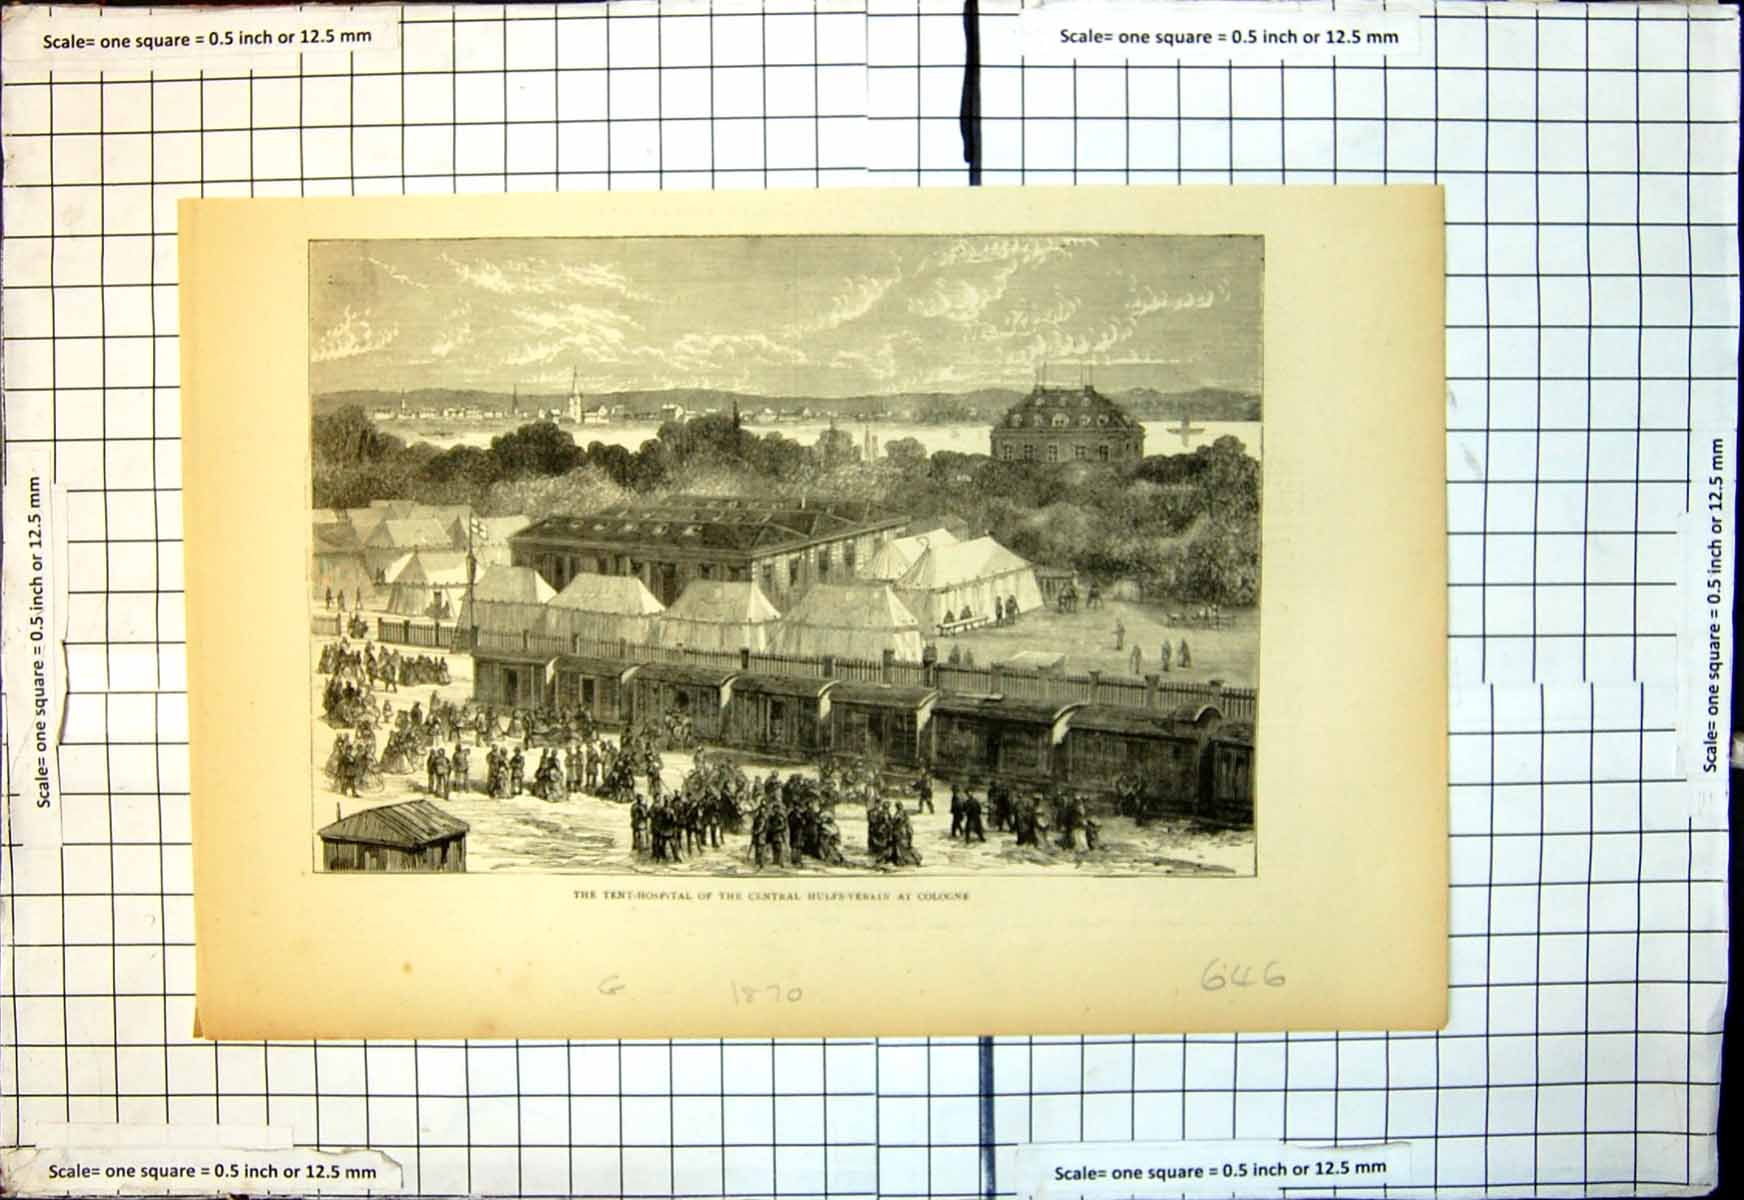 [Print Tent Hospital Central Hulfs Verein Cologne 1870 646J713 Old Original]